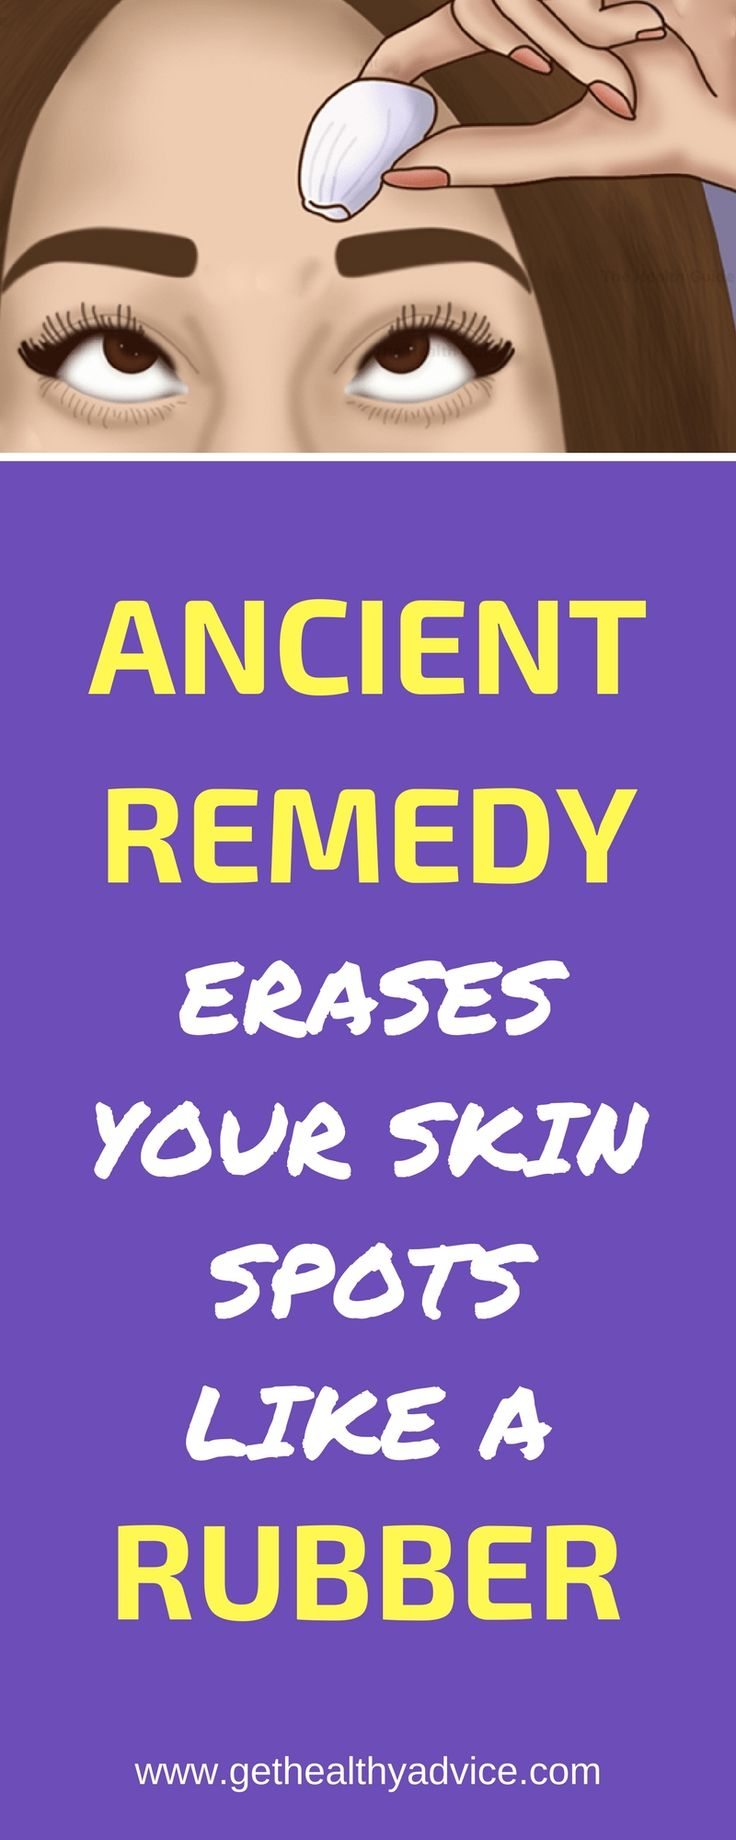 Ancient Remedy Will Erase Spots from Your Skin Like a Rubber!